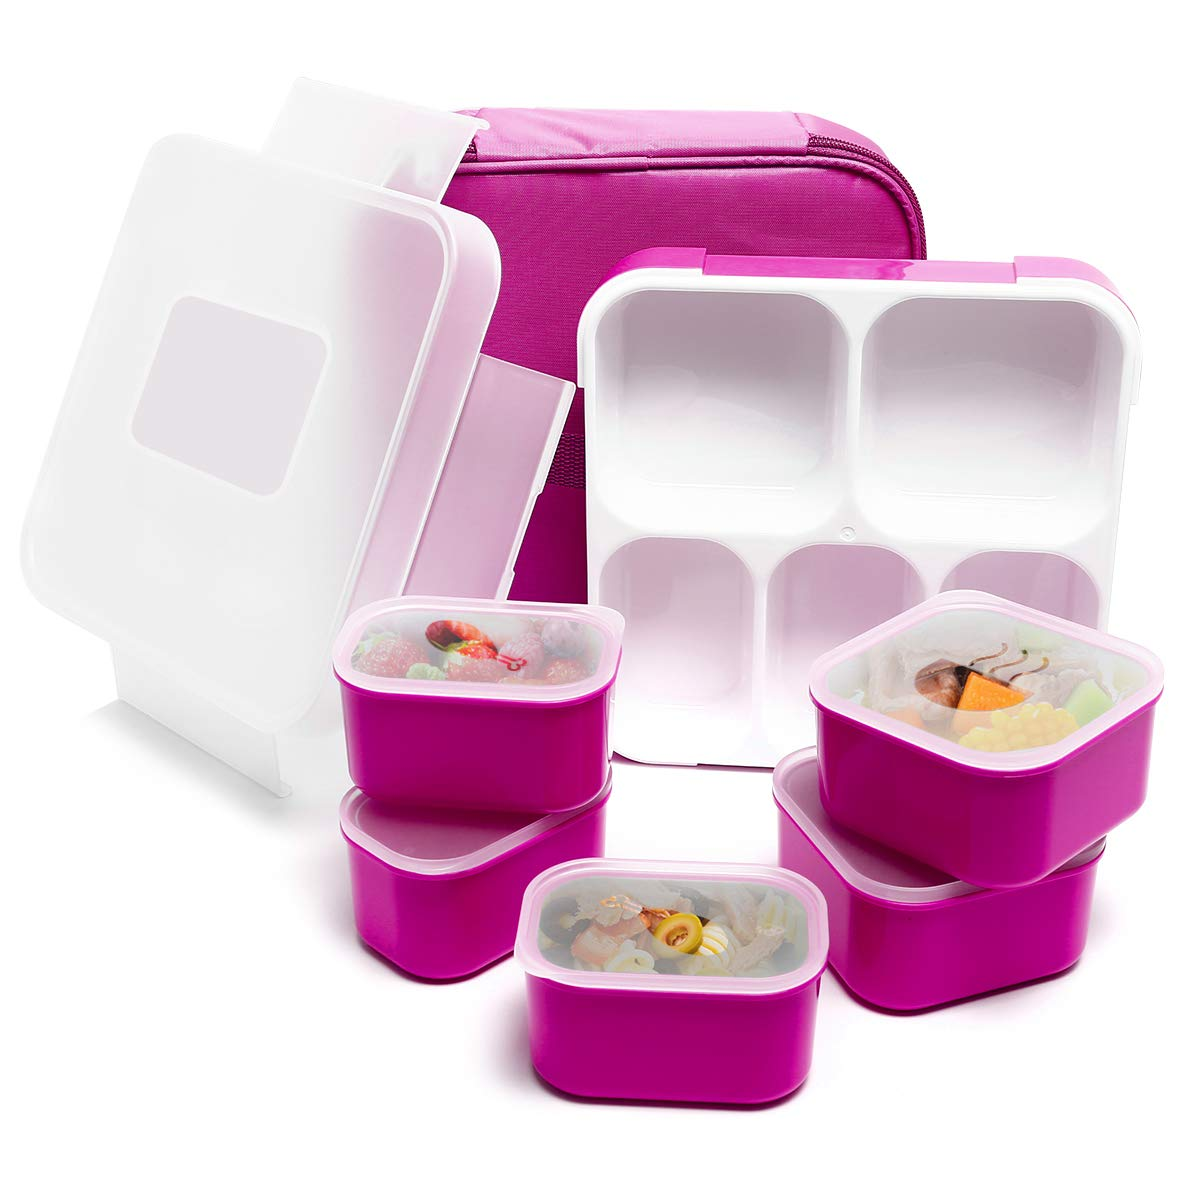 Fun Life Bento Lunch Box, 5 Compartment Insulated Leakproof Meal Prep Container Eco-Friendly Reusable with Spoon for Men,Women,Adults,Kids (purple)